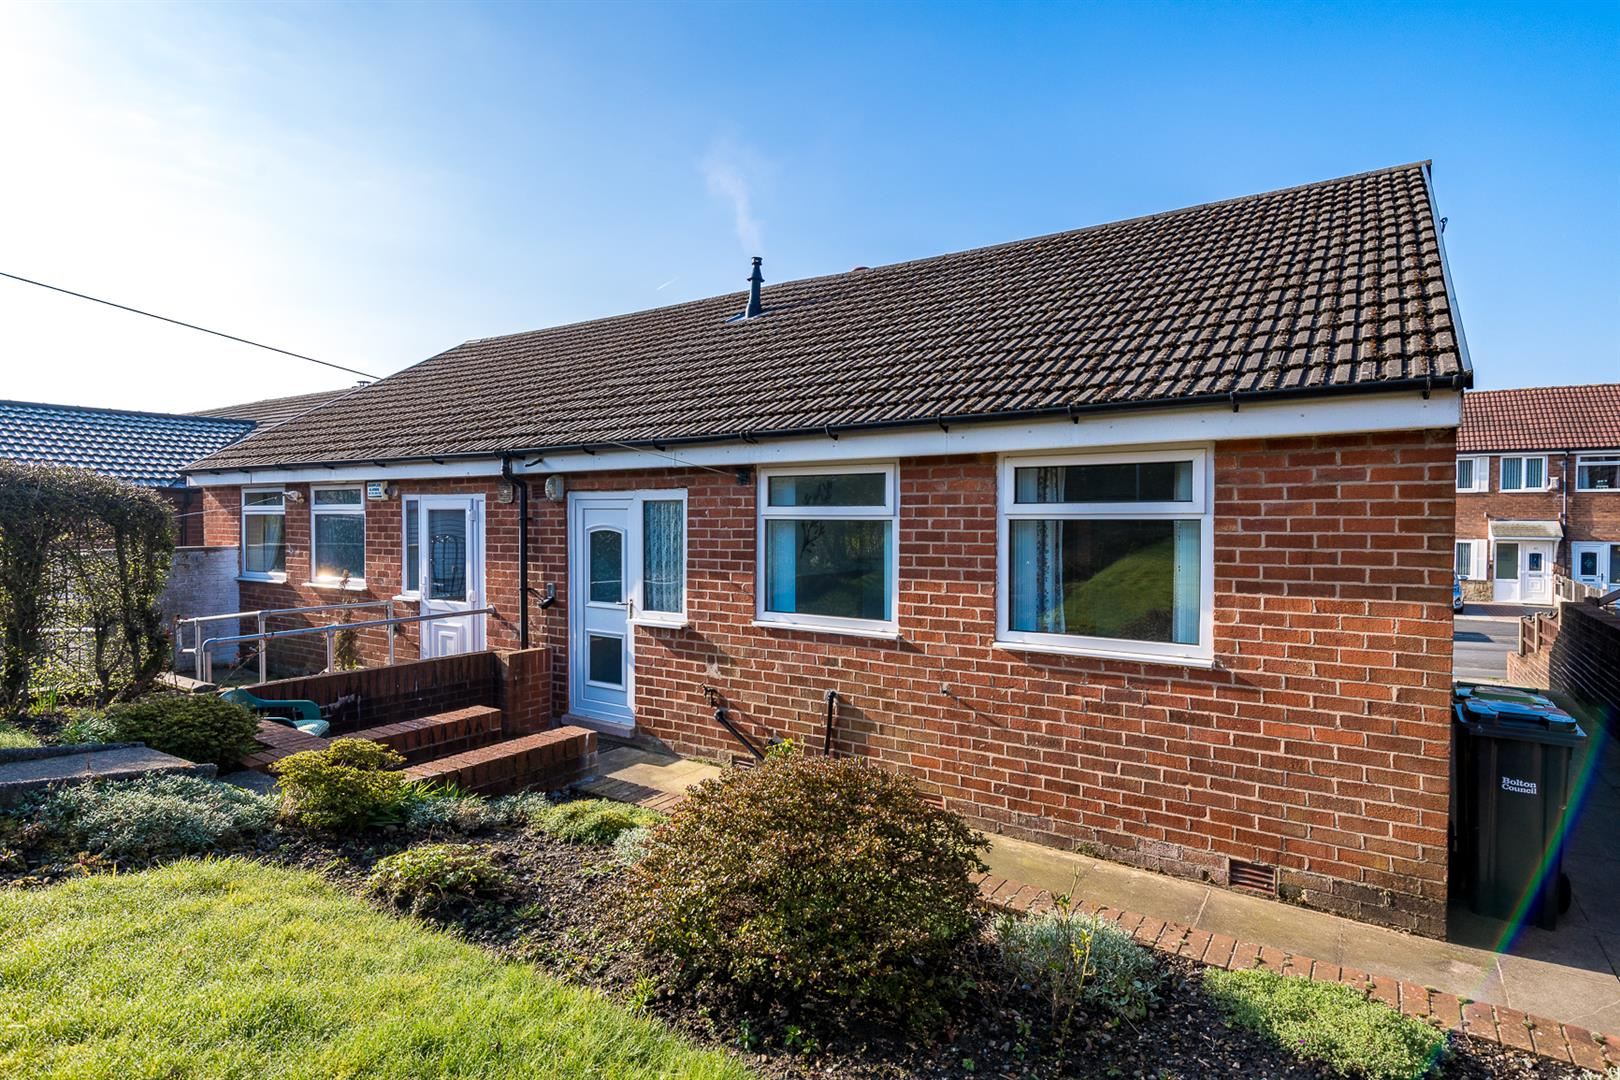 2 Bedroom Semi Detached Bungalow Sale Agreed Image 12